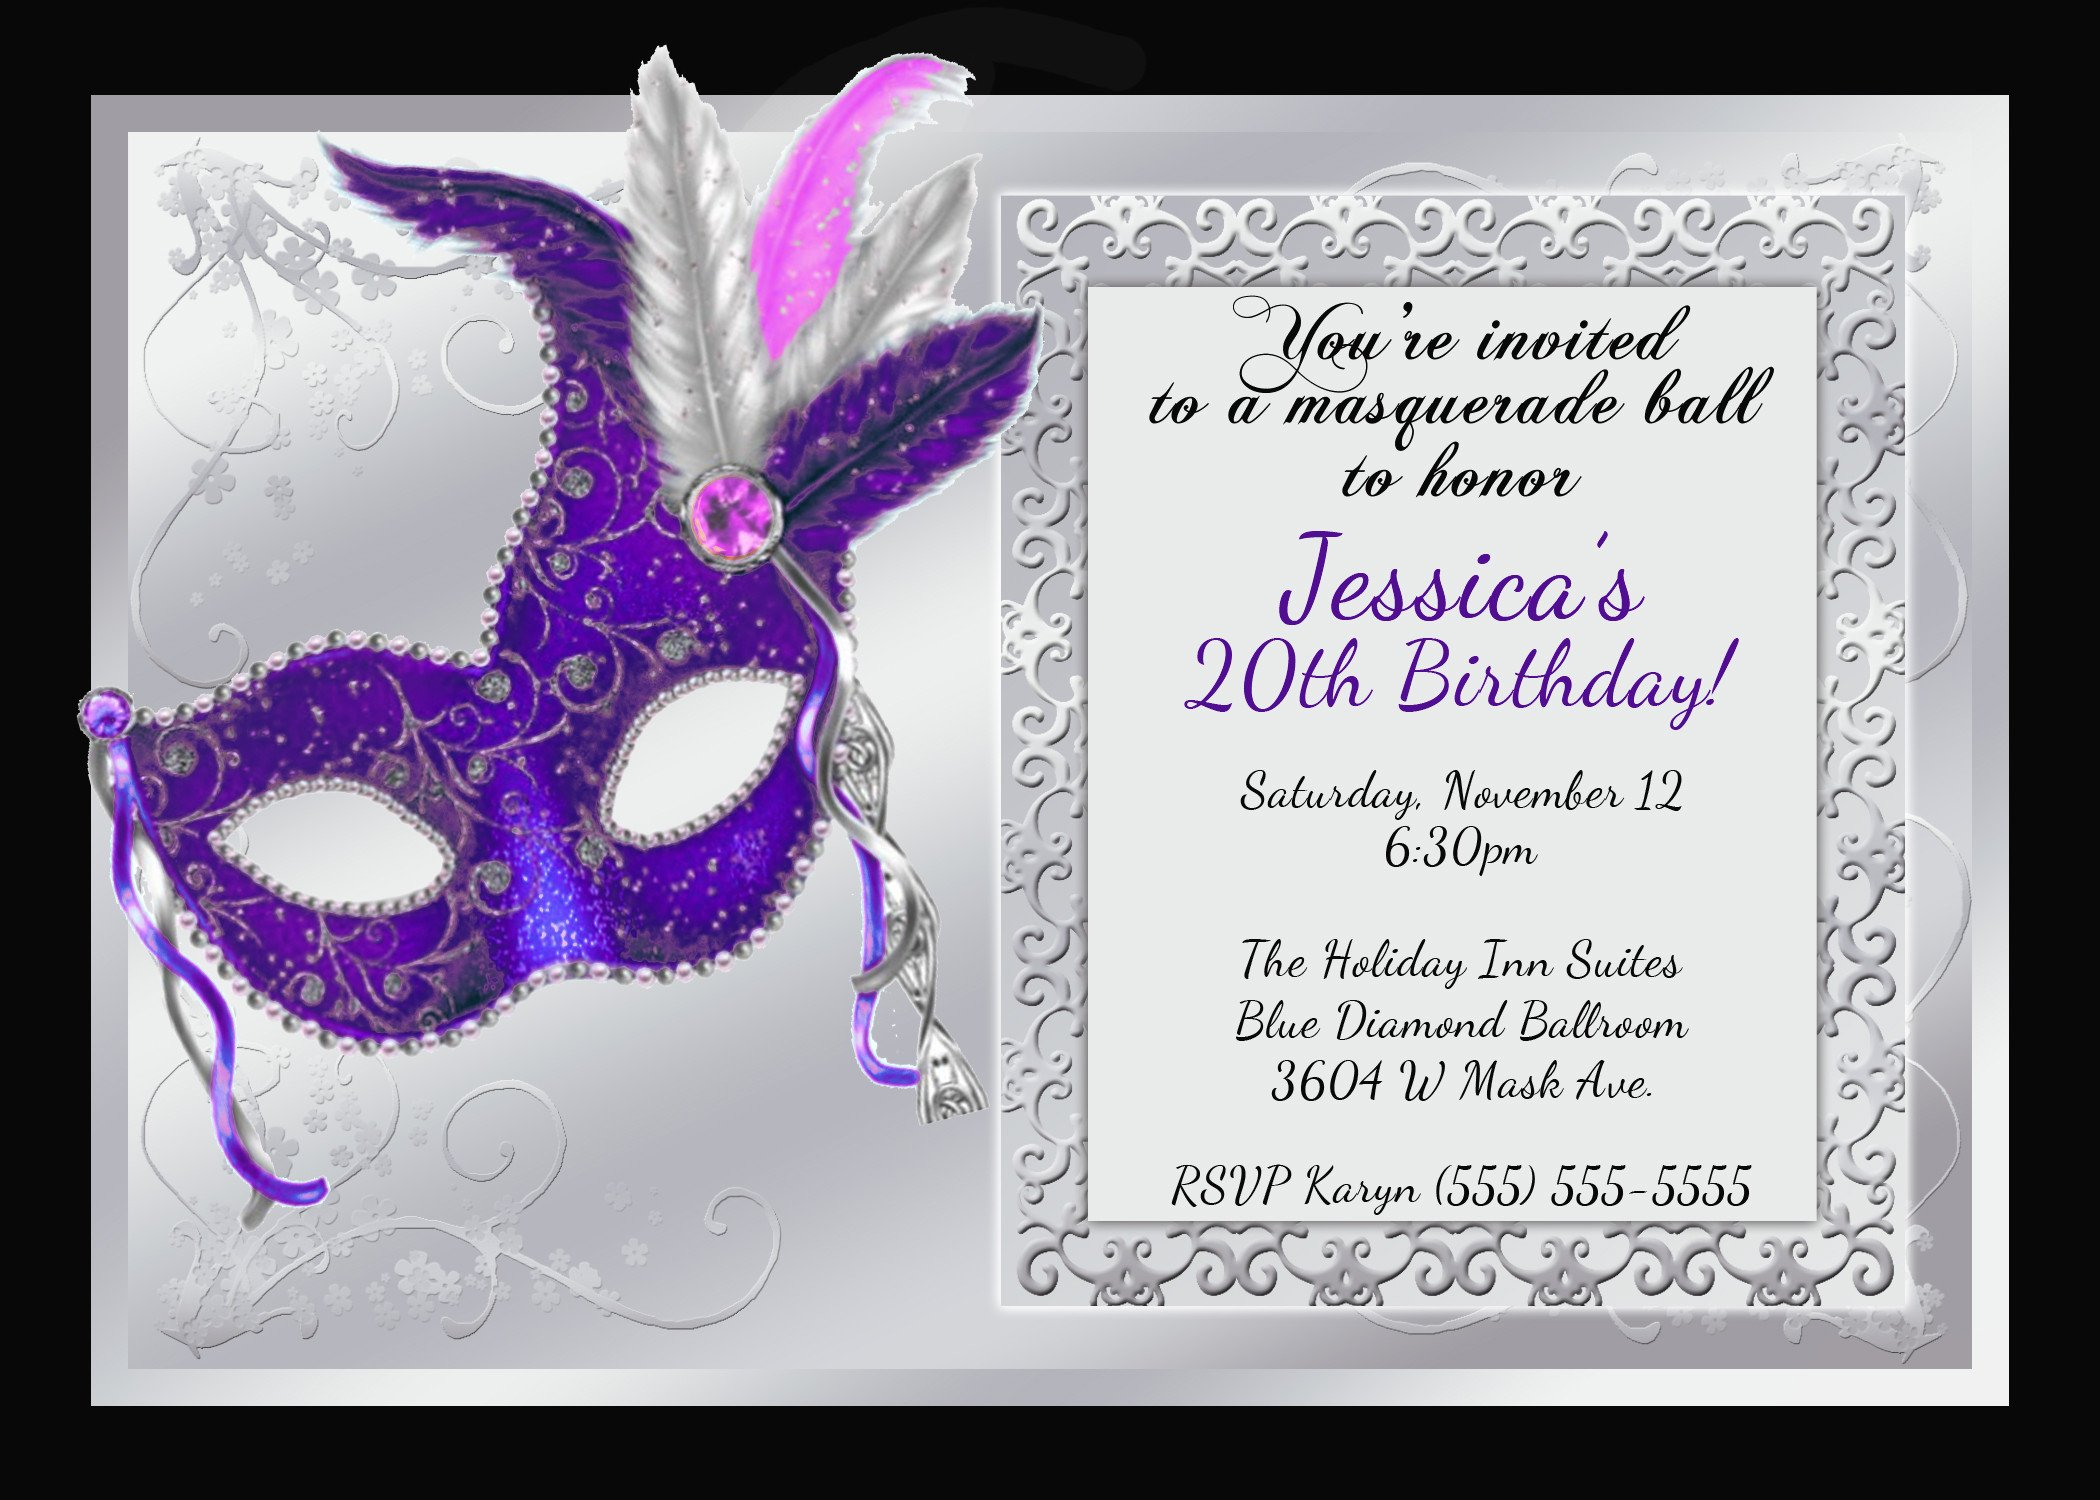 Masquerade Invitations Template Free Mardi Gras and Masquerade Birthday Invitations